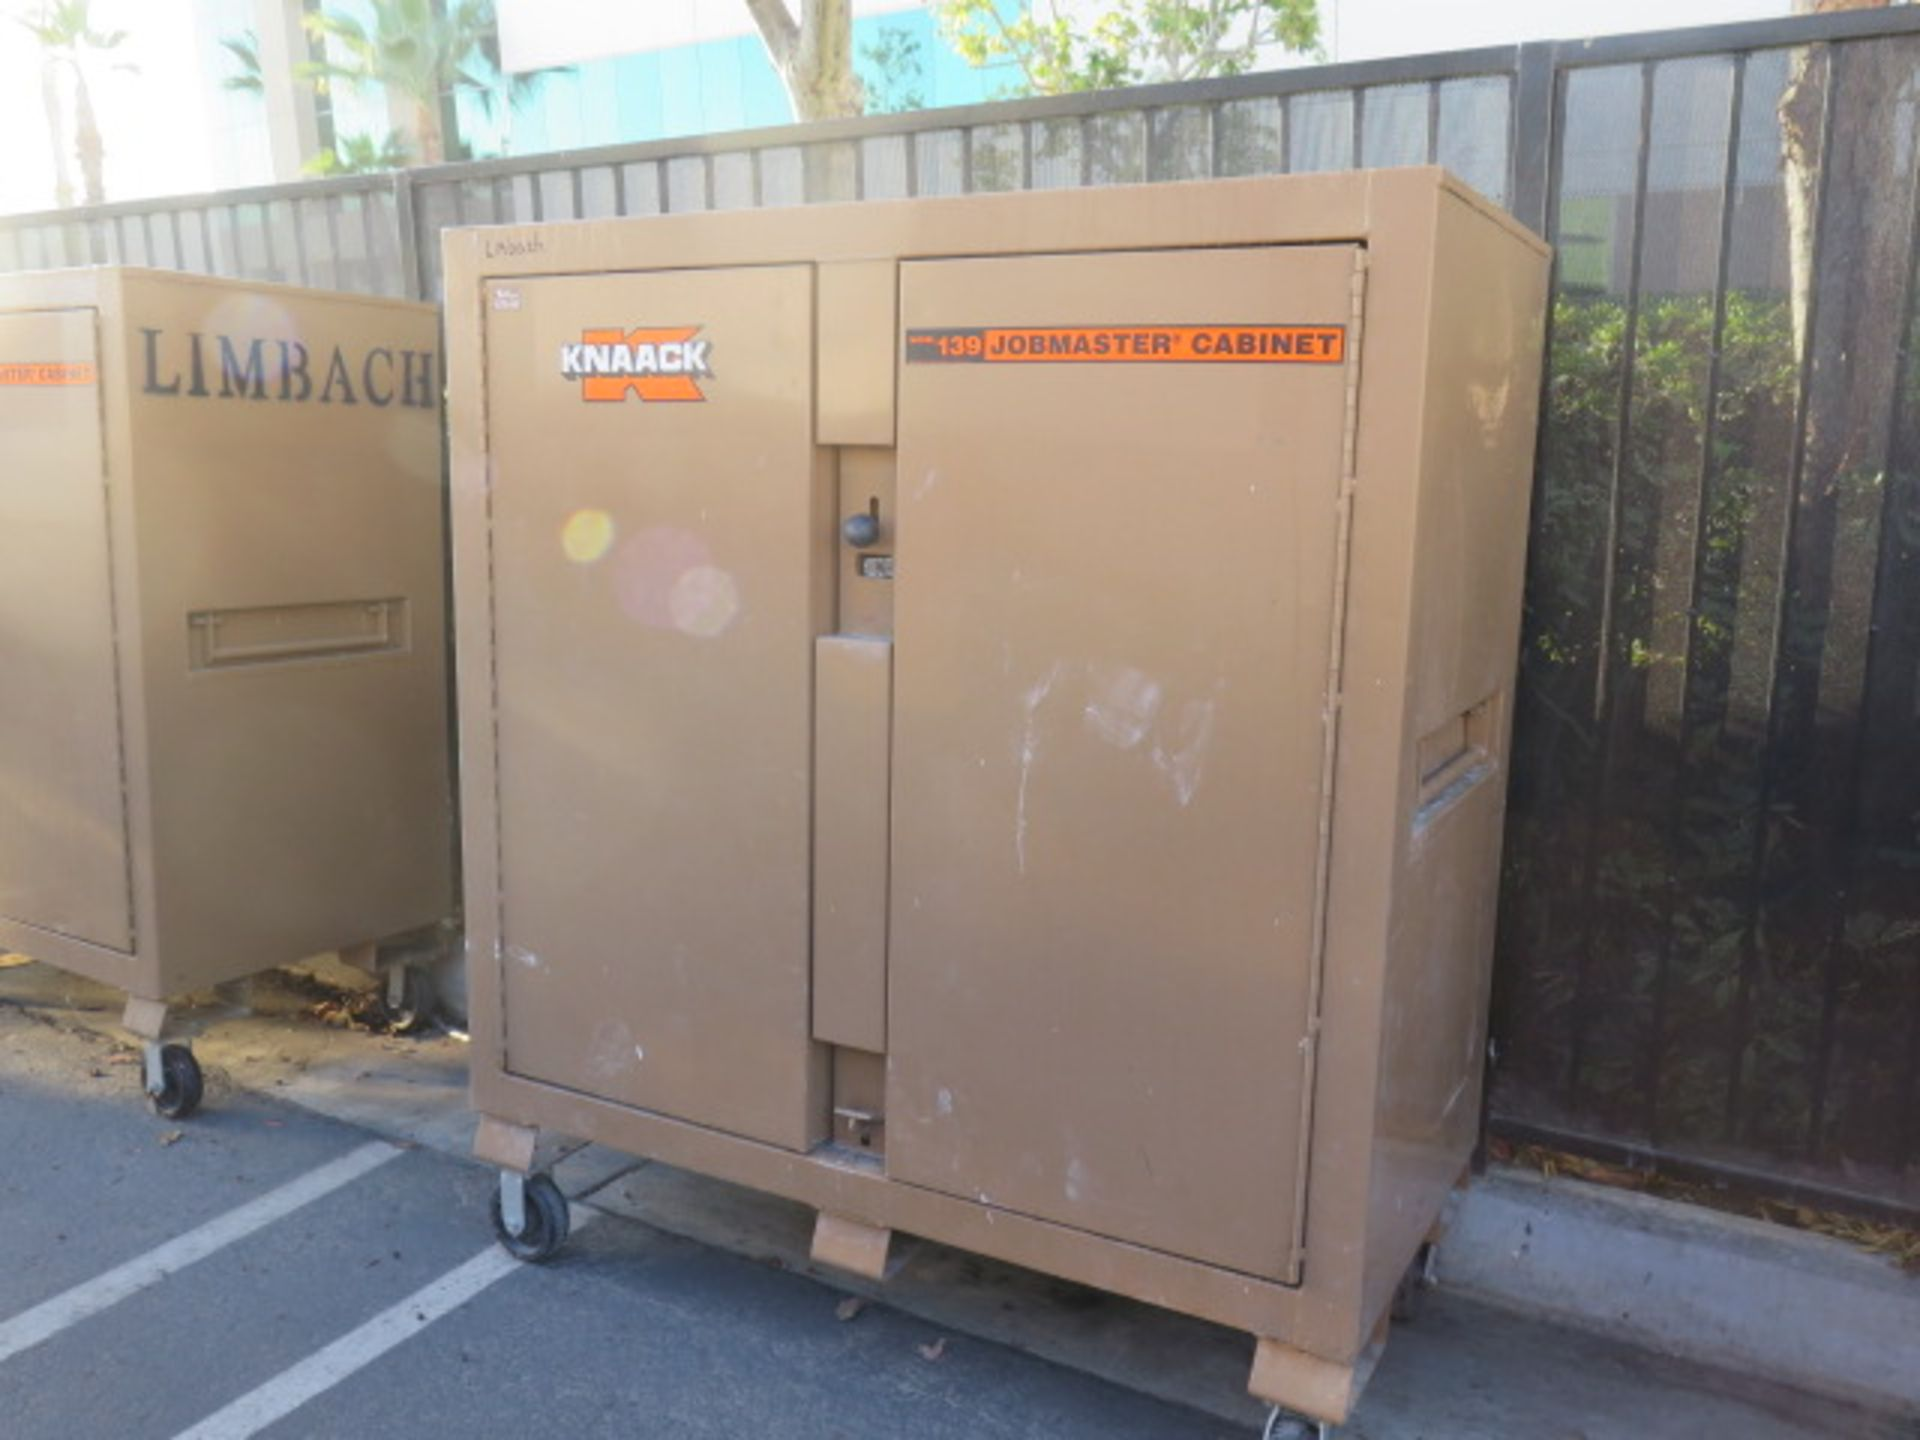 Knaack mdl. 139 Jobmaster Rolling Job Boxw/ Hardware and Supplies (SOLD AS-IS - NO WARRANTY) - Image 2 of 21